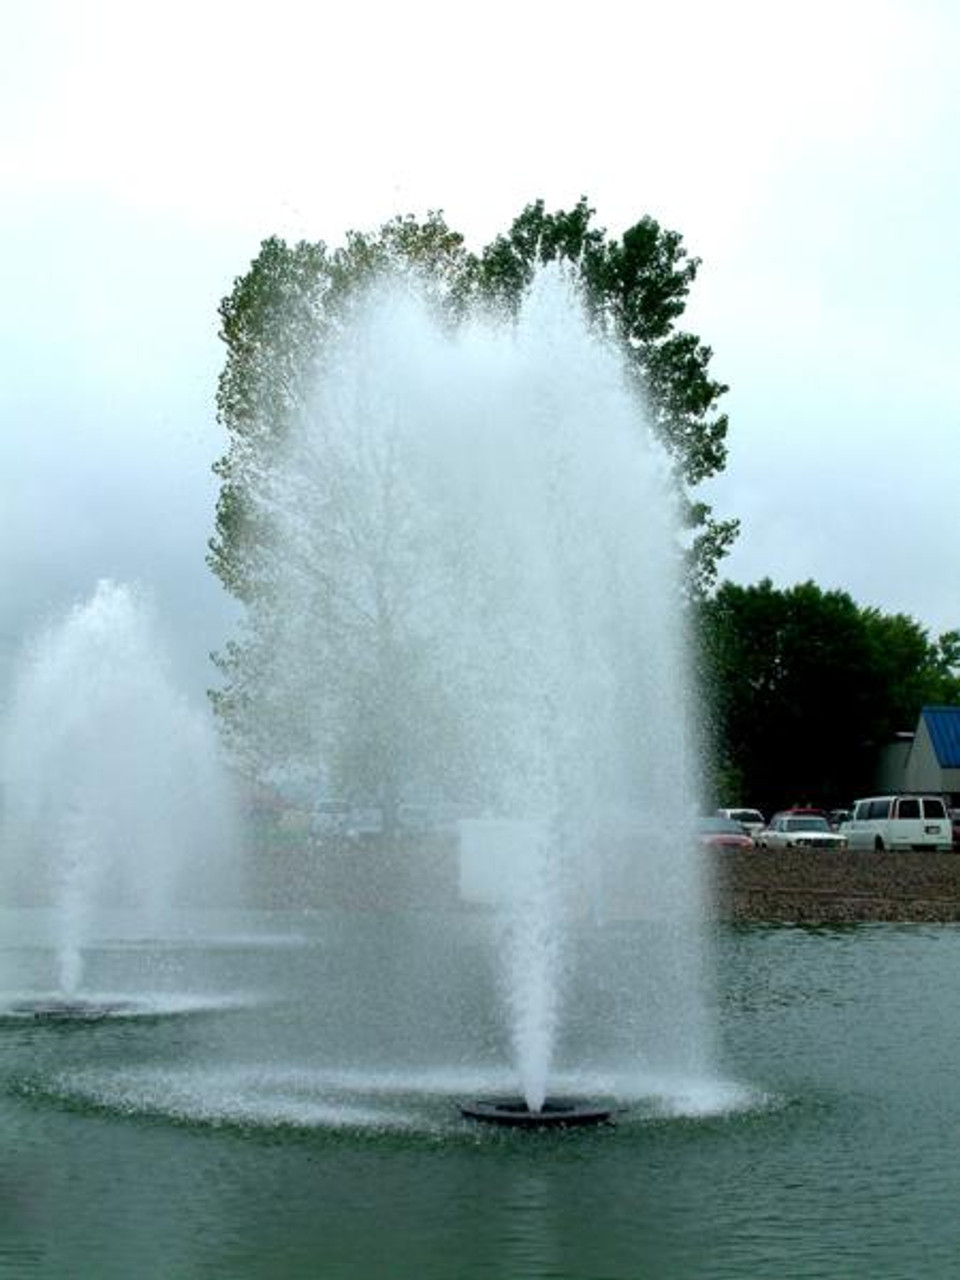 Kasco Fountain Multi-Pattern 3.3JF (3 PHASE) (incl. fountain, float, control panel, cord)